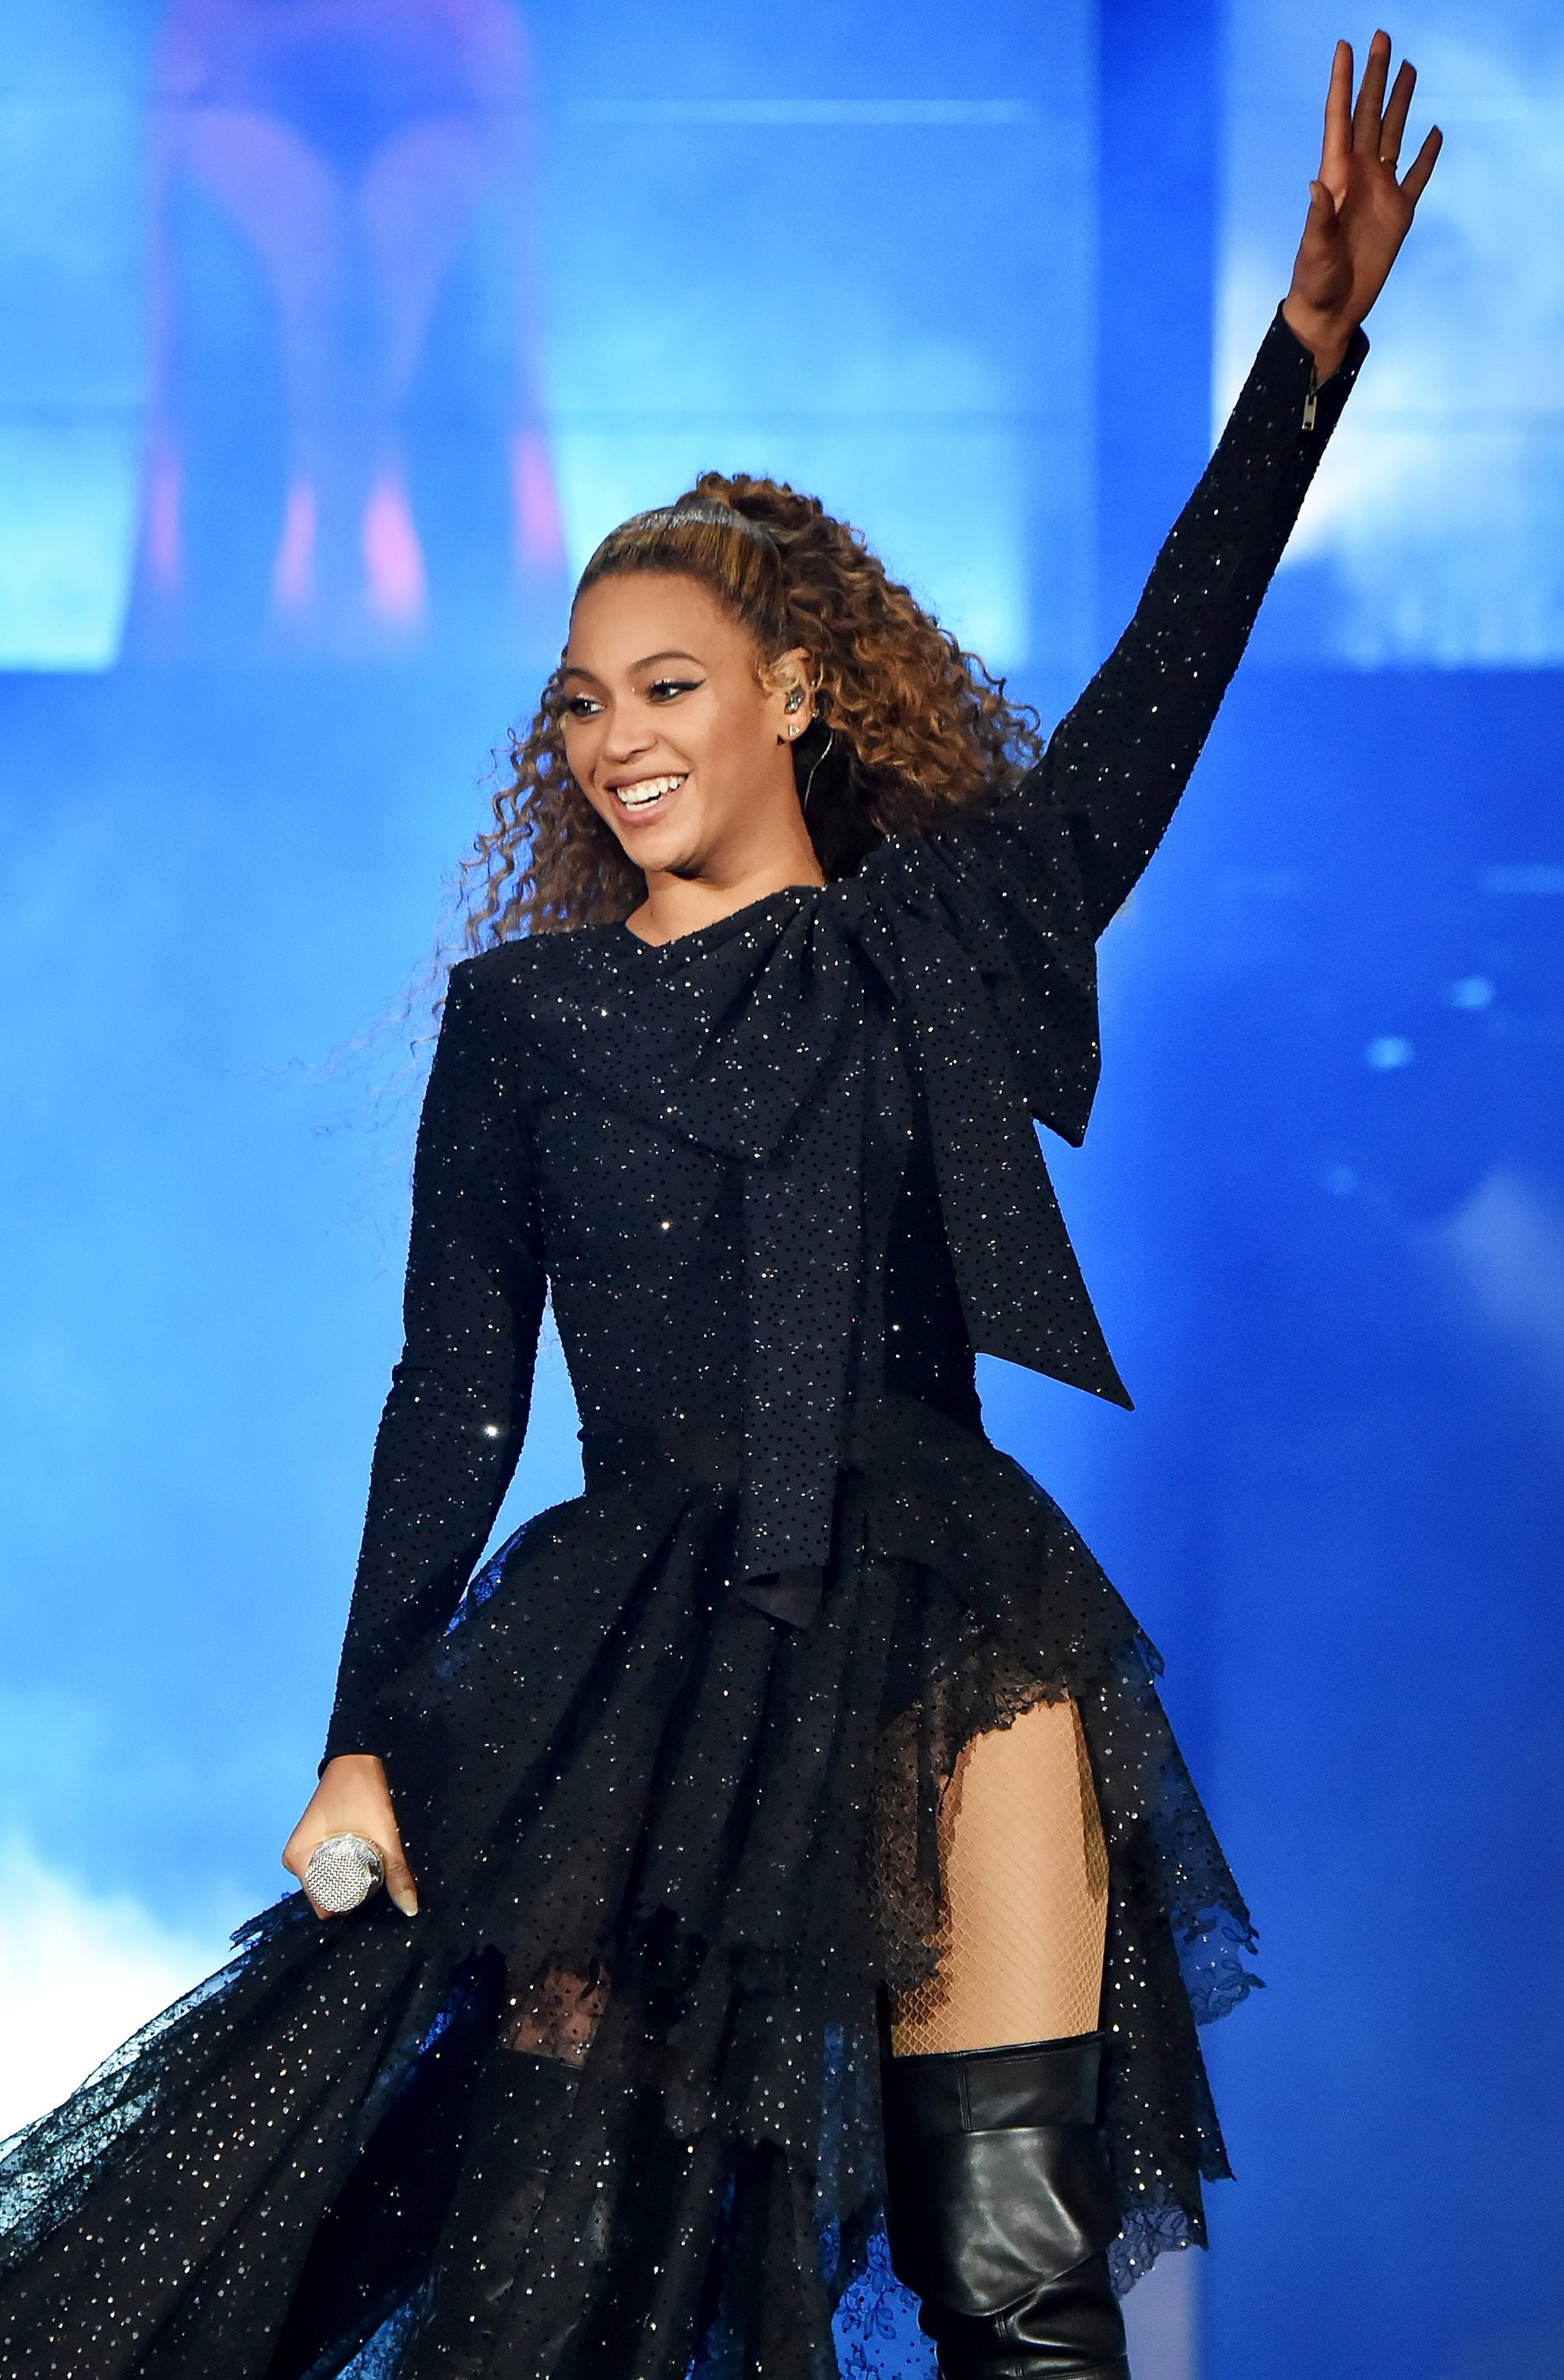 Beyonce Wishes Sir And Rumi A Happy Birthday During Concert Popsugar Celebrity Australia